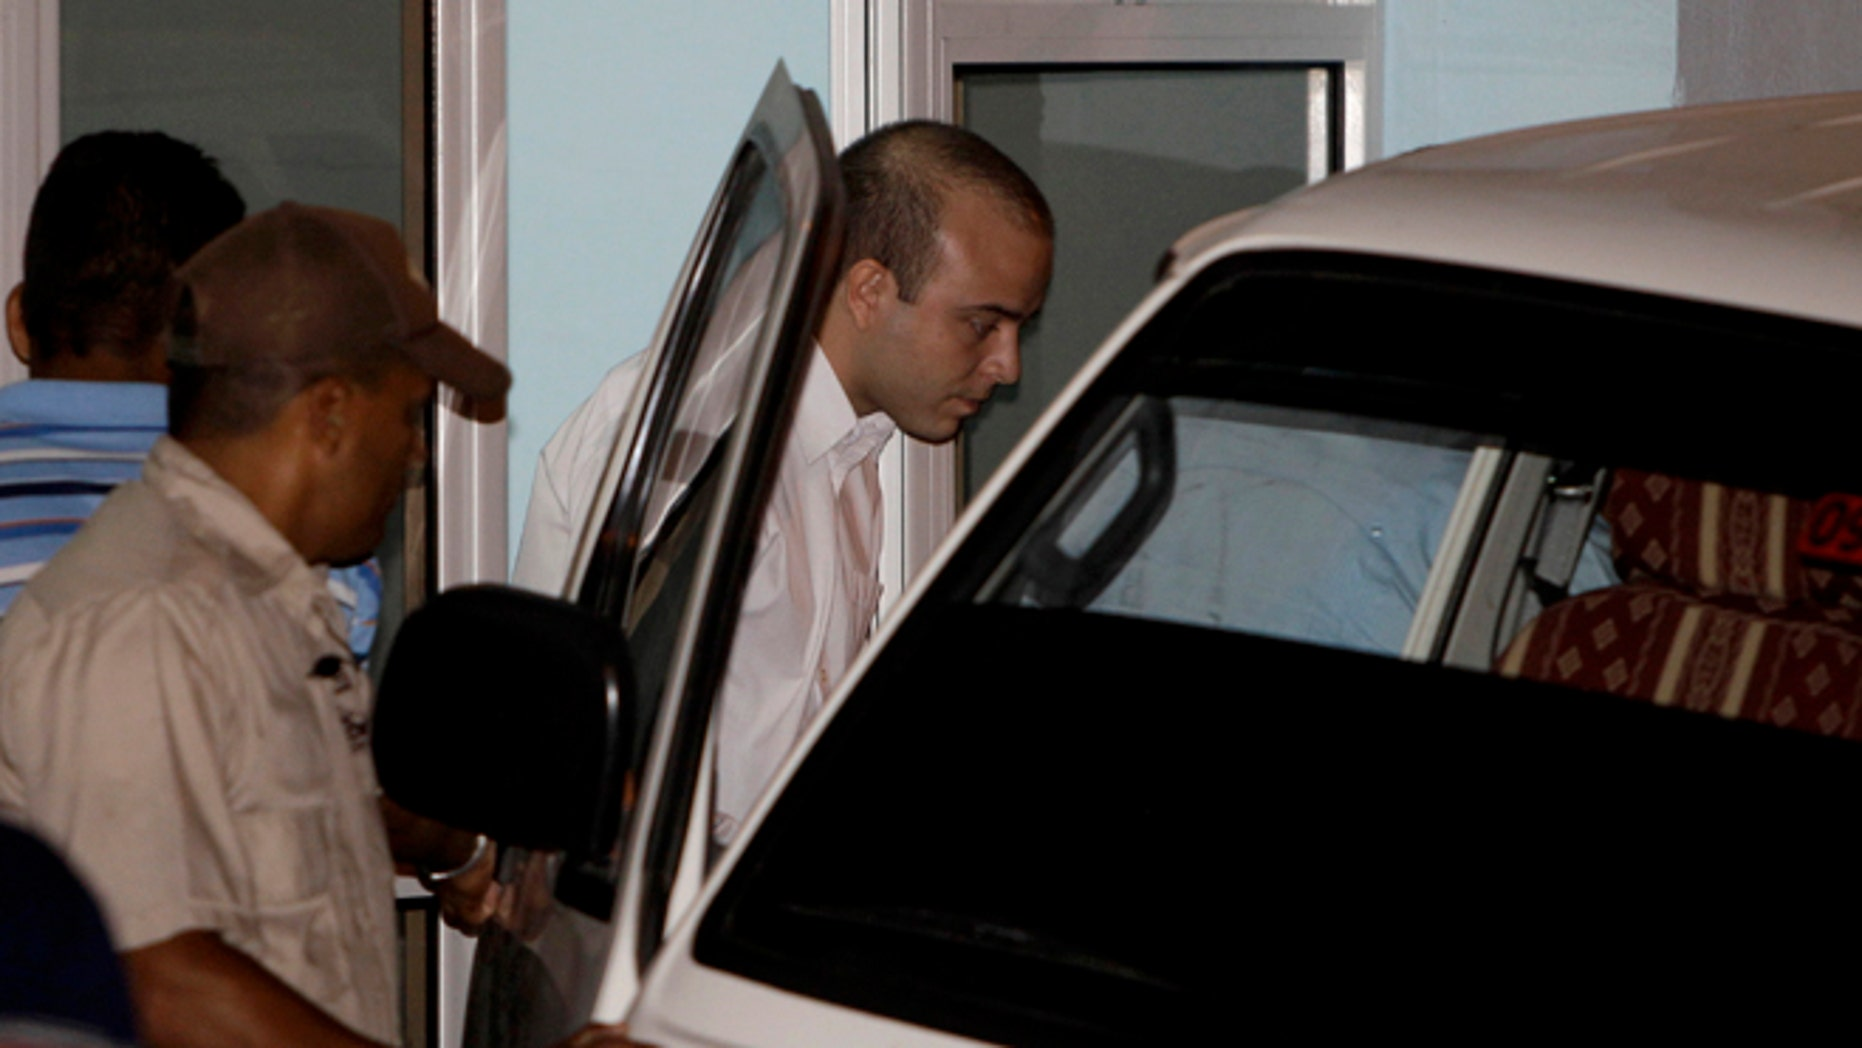 Spanish citizen Angel Carromero, center, enters a vehicle as he leaves the courthouse after his trial in Bayamo, Cuba, Friday, Oct. 5, 2012. Authorities accused Carromero of speeding and charged him with the equivalent of vehicular manslaughter, and prosecutors asked the court for a seven-year sentence. The car crash killed a prominent Cuban dissident Oswaldo Paya and another dissident, Harold Cepero on July 22.  A panel of judges will now consider the evidence and issue a ruling at an unspecified future date. (AP Photo/Franklin Reyes)